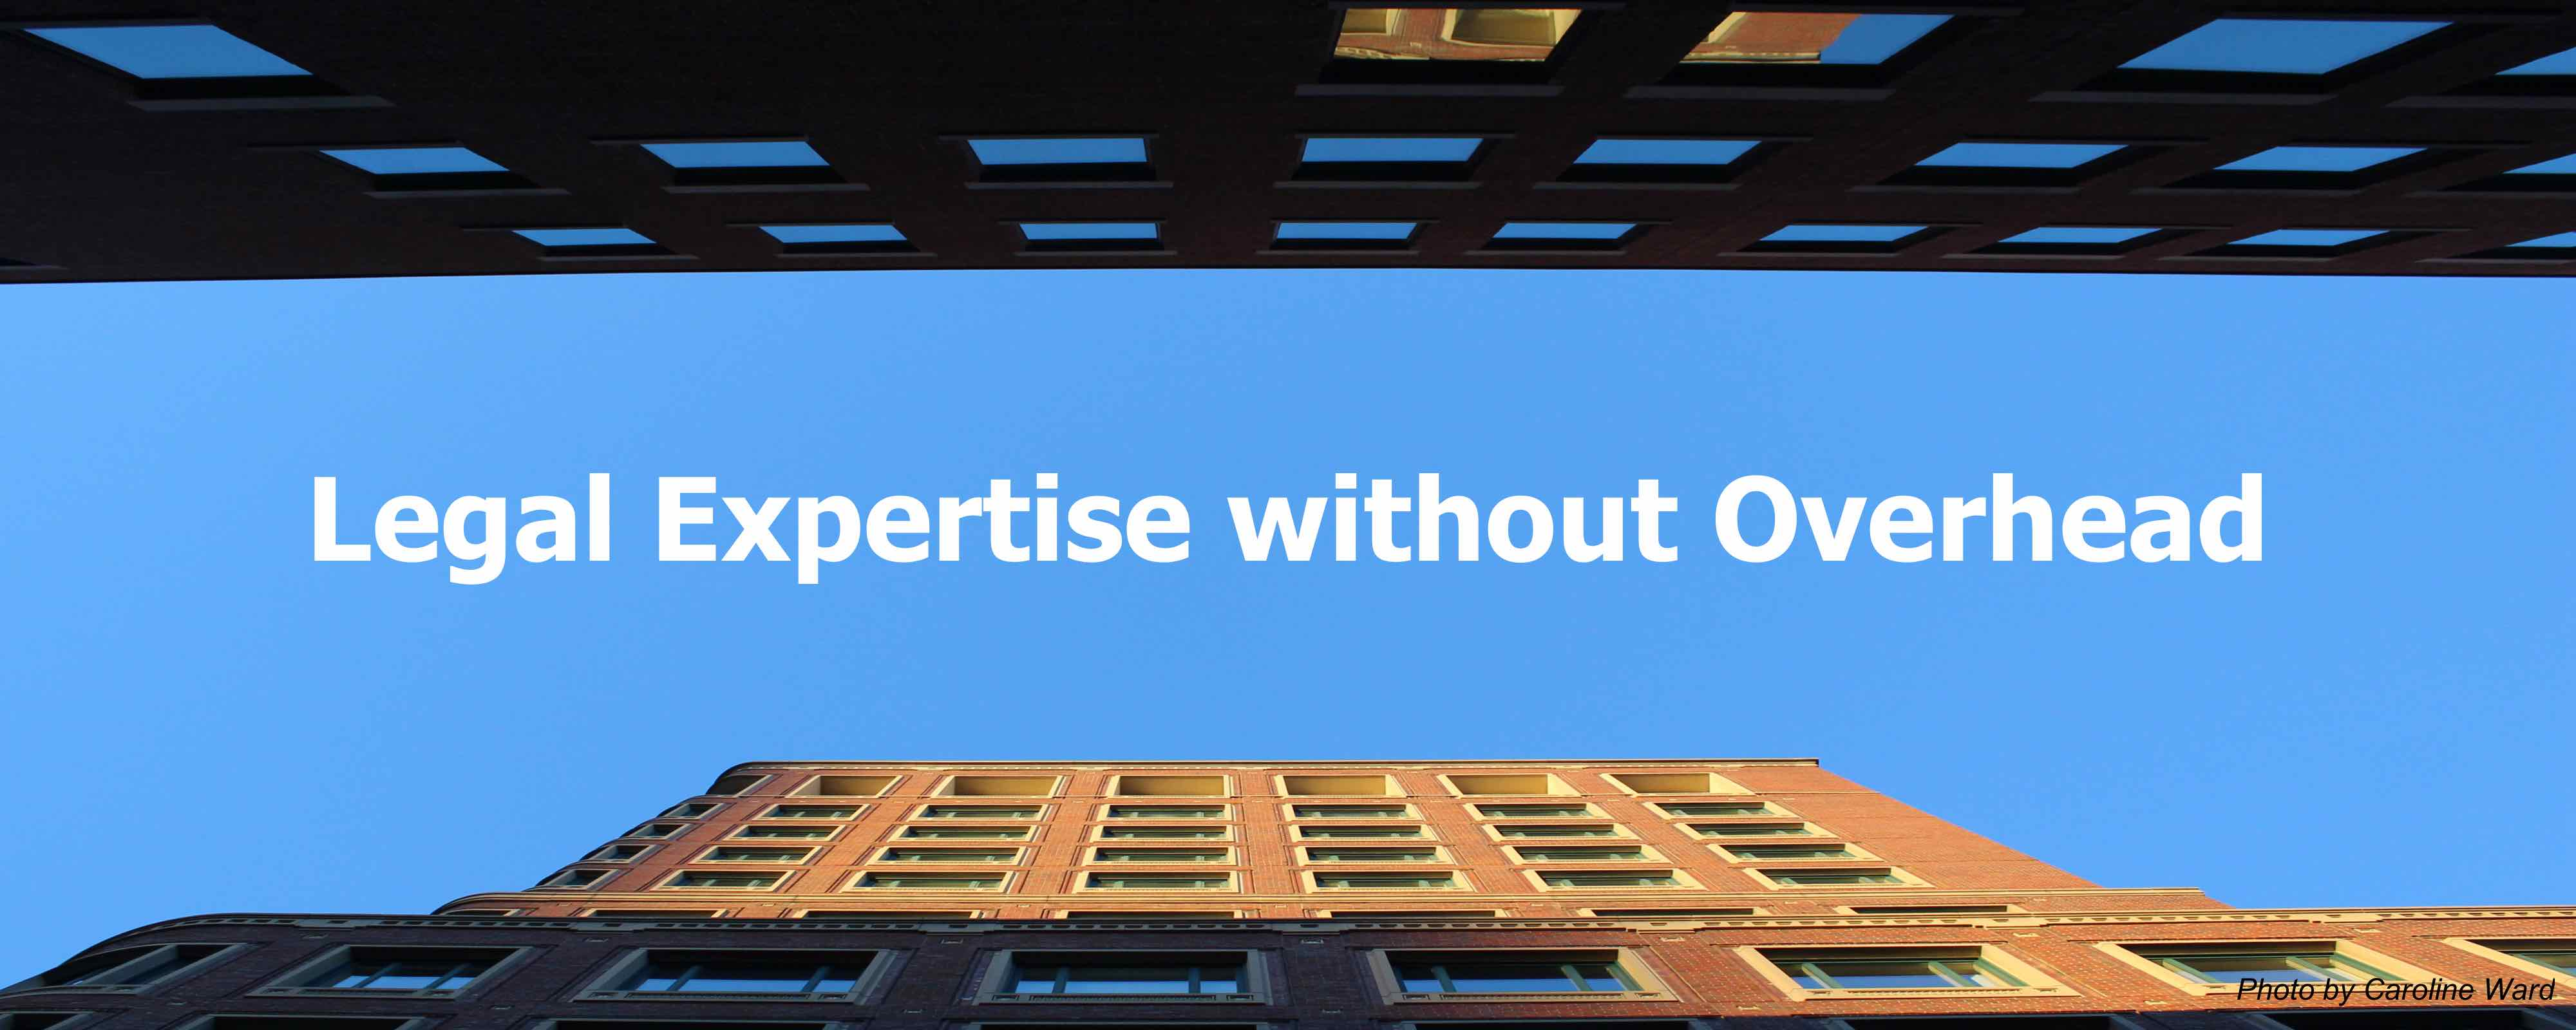 Legal Expertise without Overhead